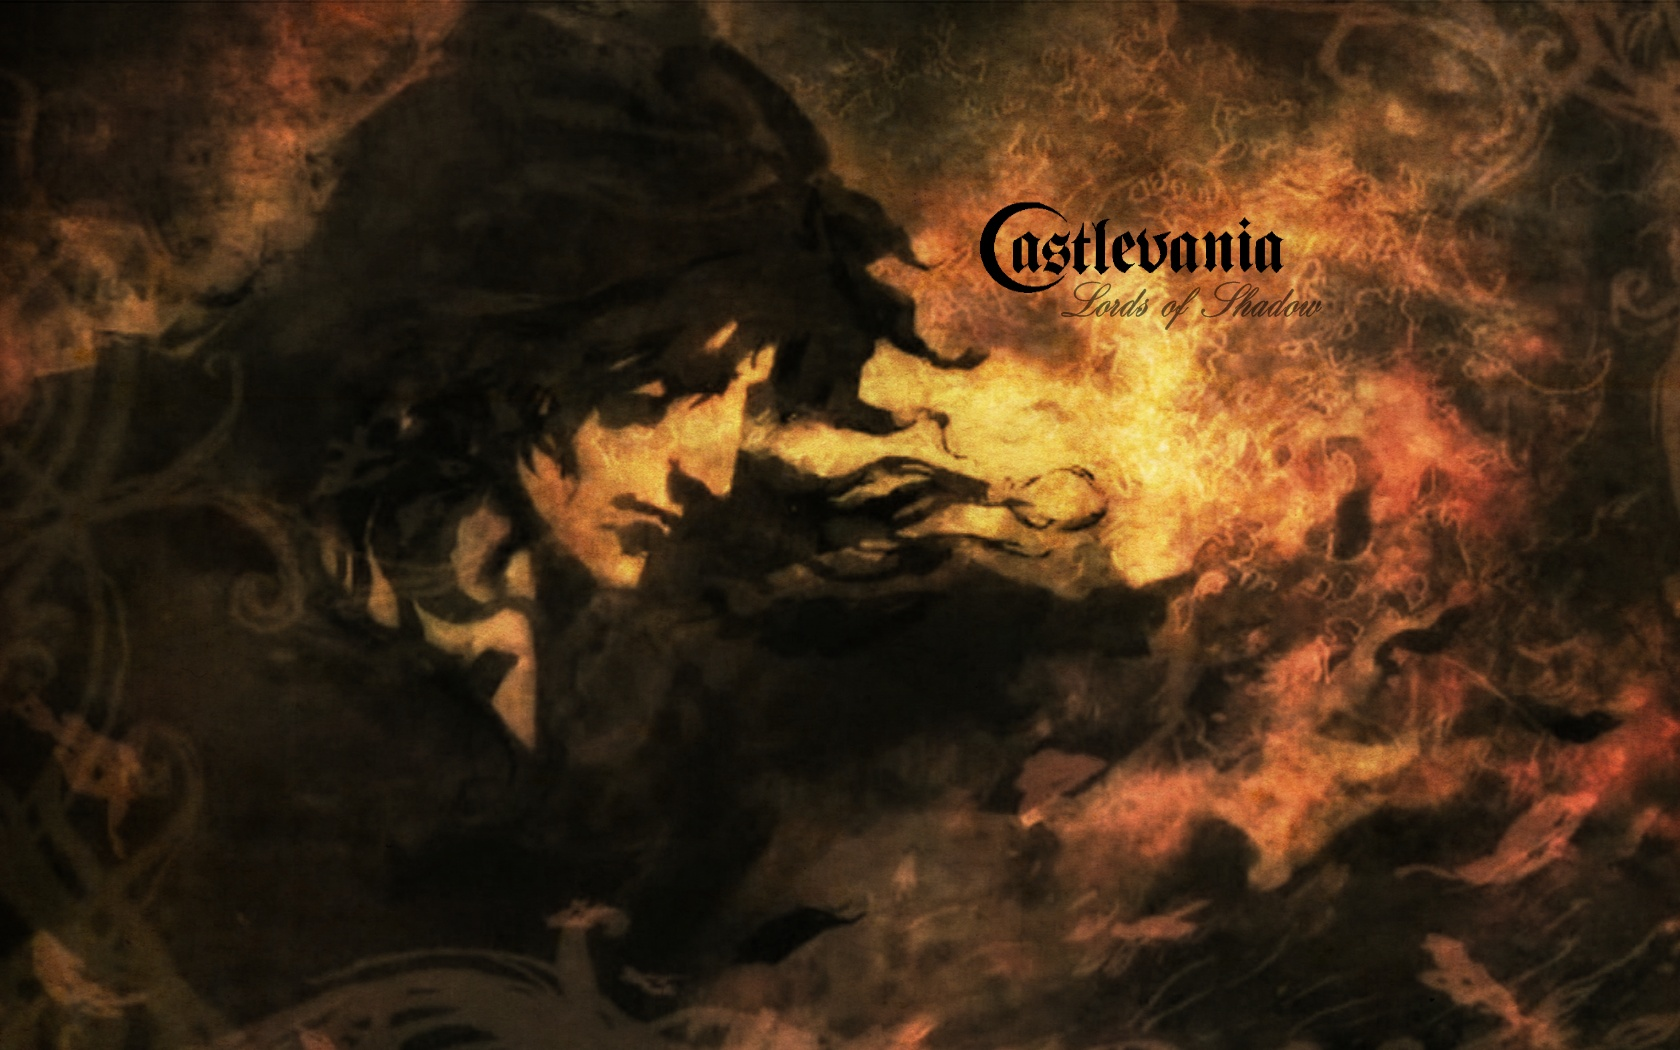 New Castlevania Lords of Shadow gameplay-video (Spoilers)